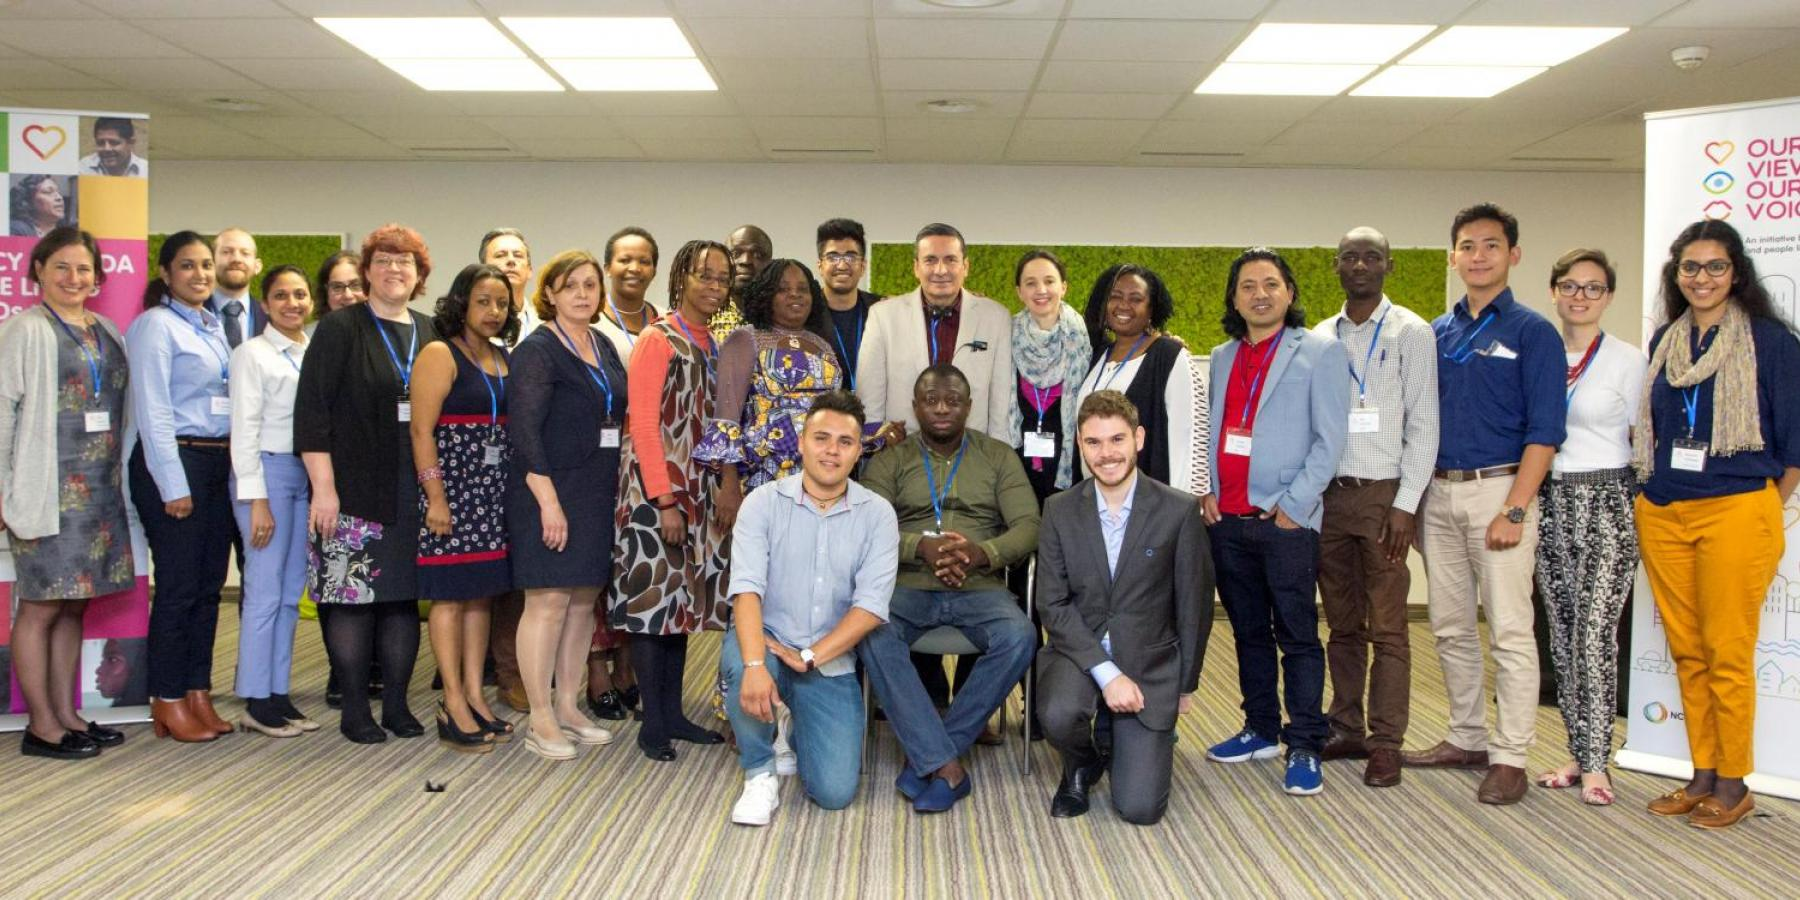 'Family photo' from the Our Views Our Voices training of people living with NCDs, ahead of the 71st World Health Assembly.